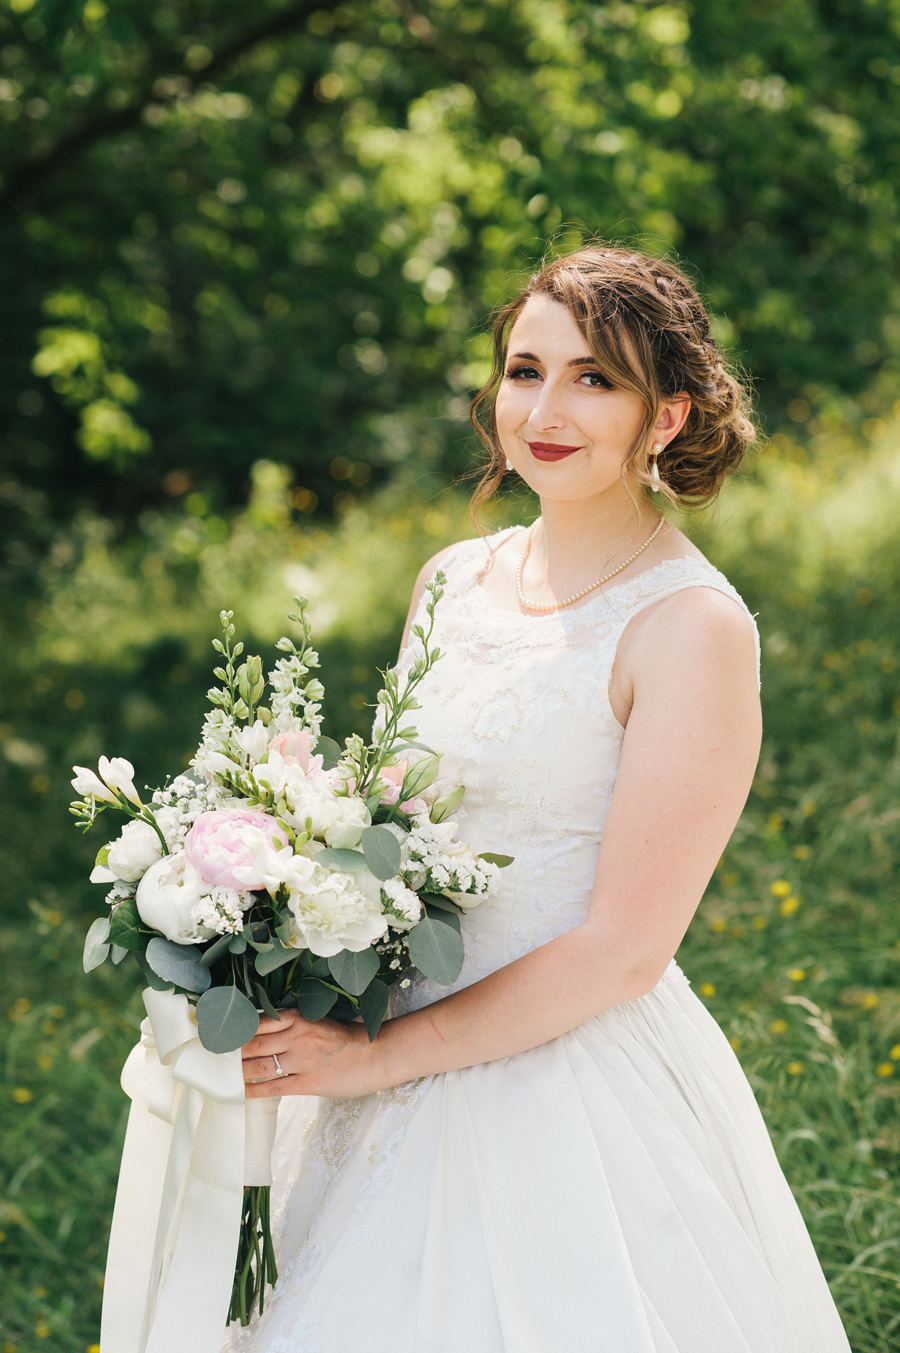 bride smiling and posing with her bouquet of white and light pink flowers